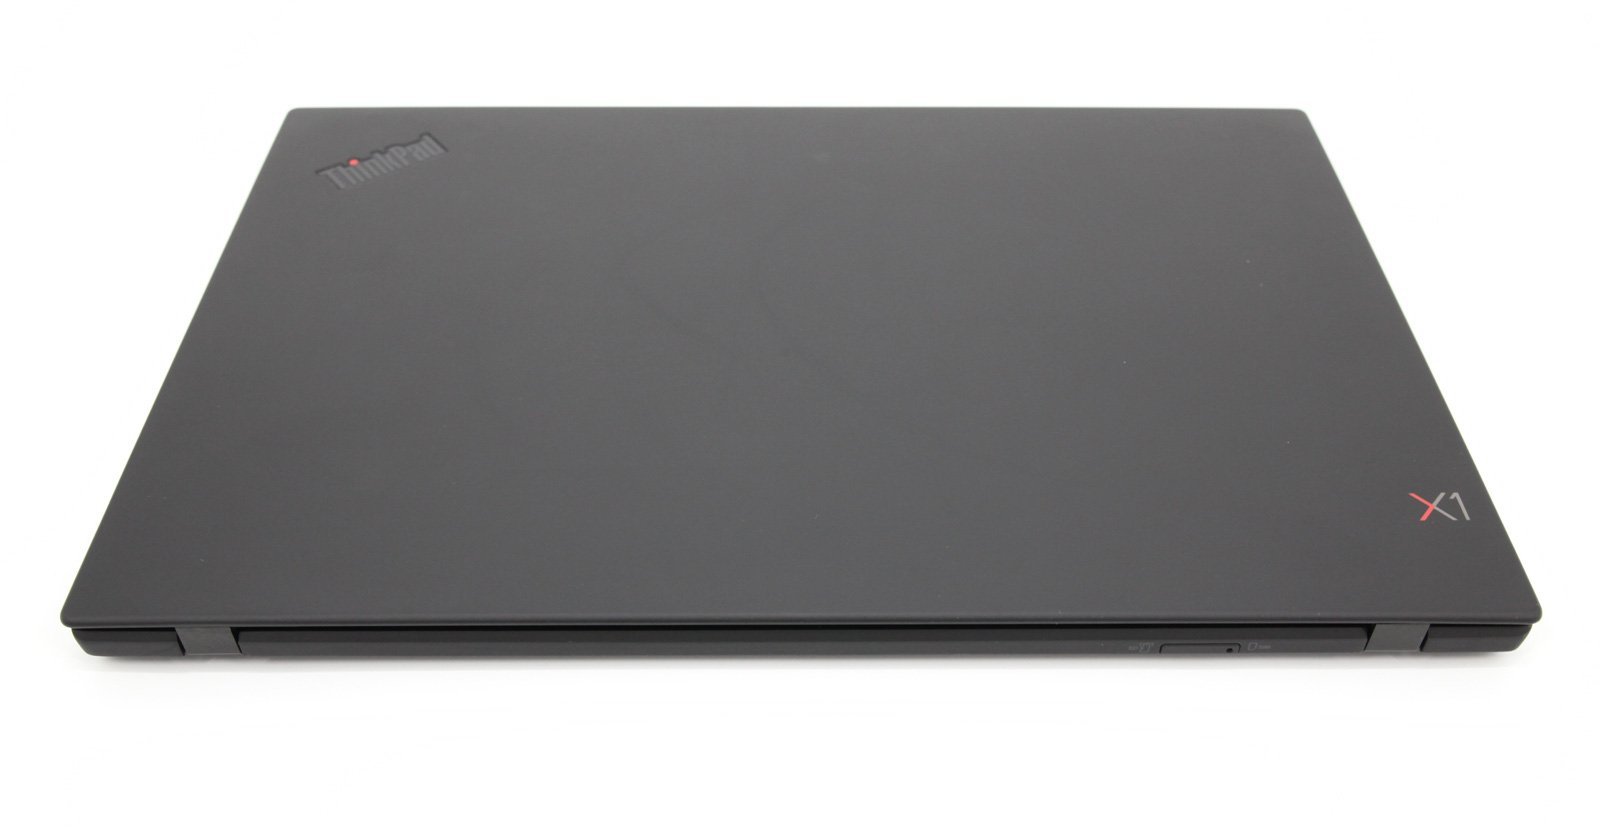 Lenovo Thinkpad X1 Carbon 6th Gen: i5 8th Gen, 256GB SSD, 8GB RAM, Warranty - CruiseTech